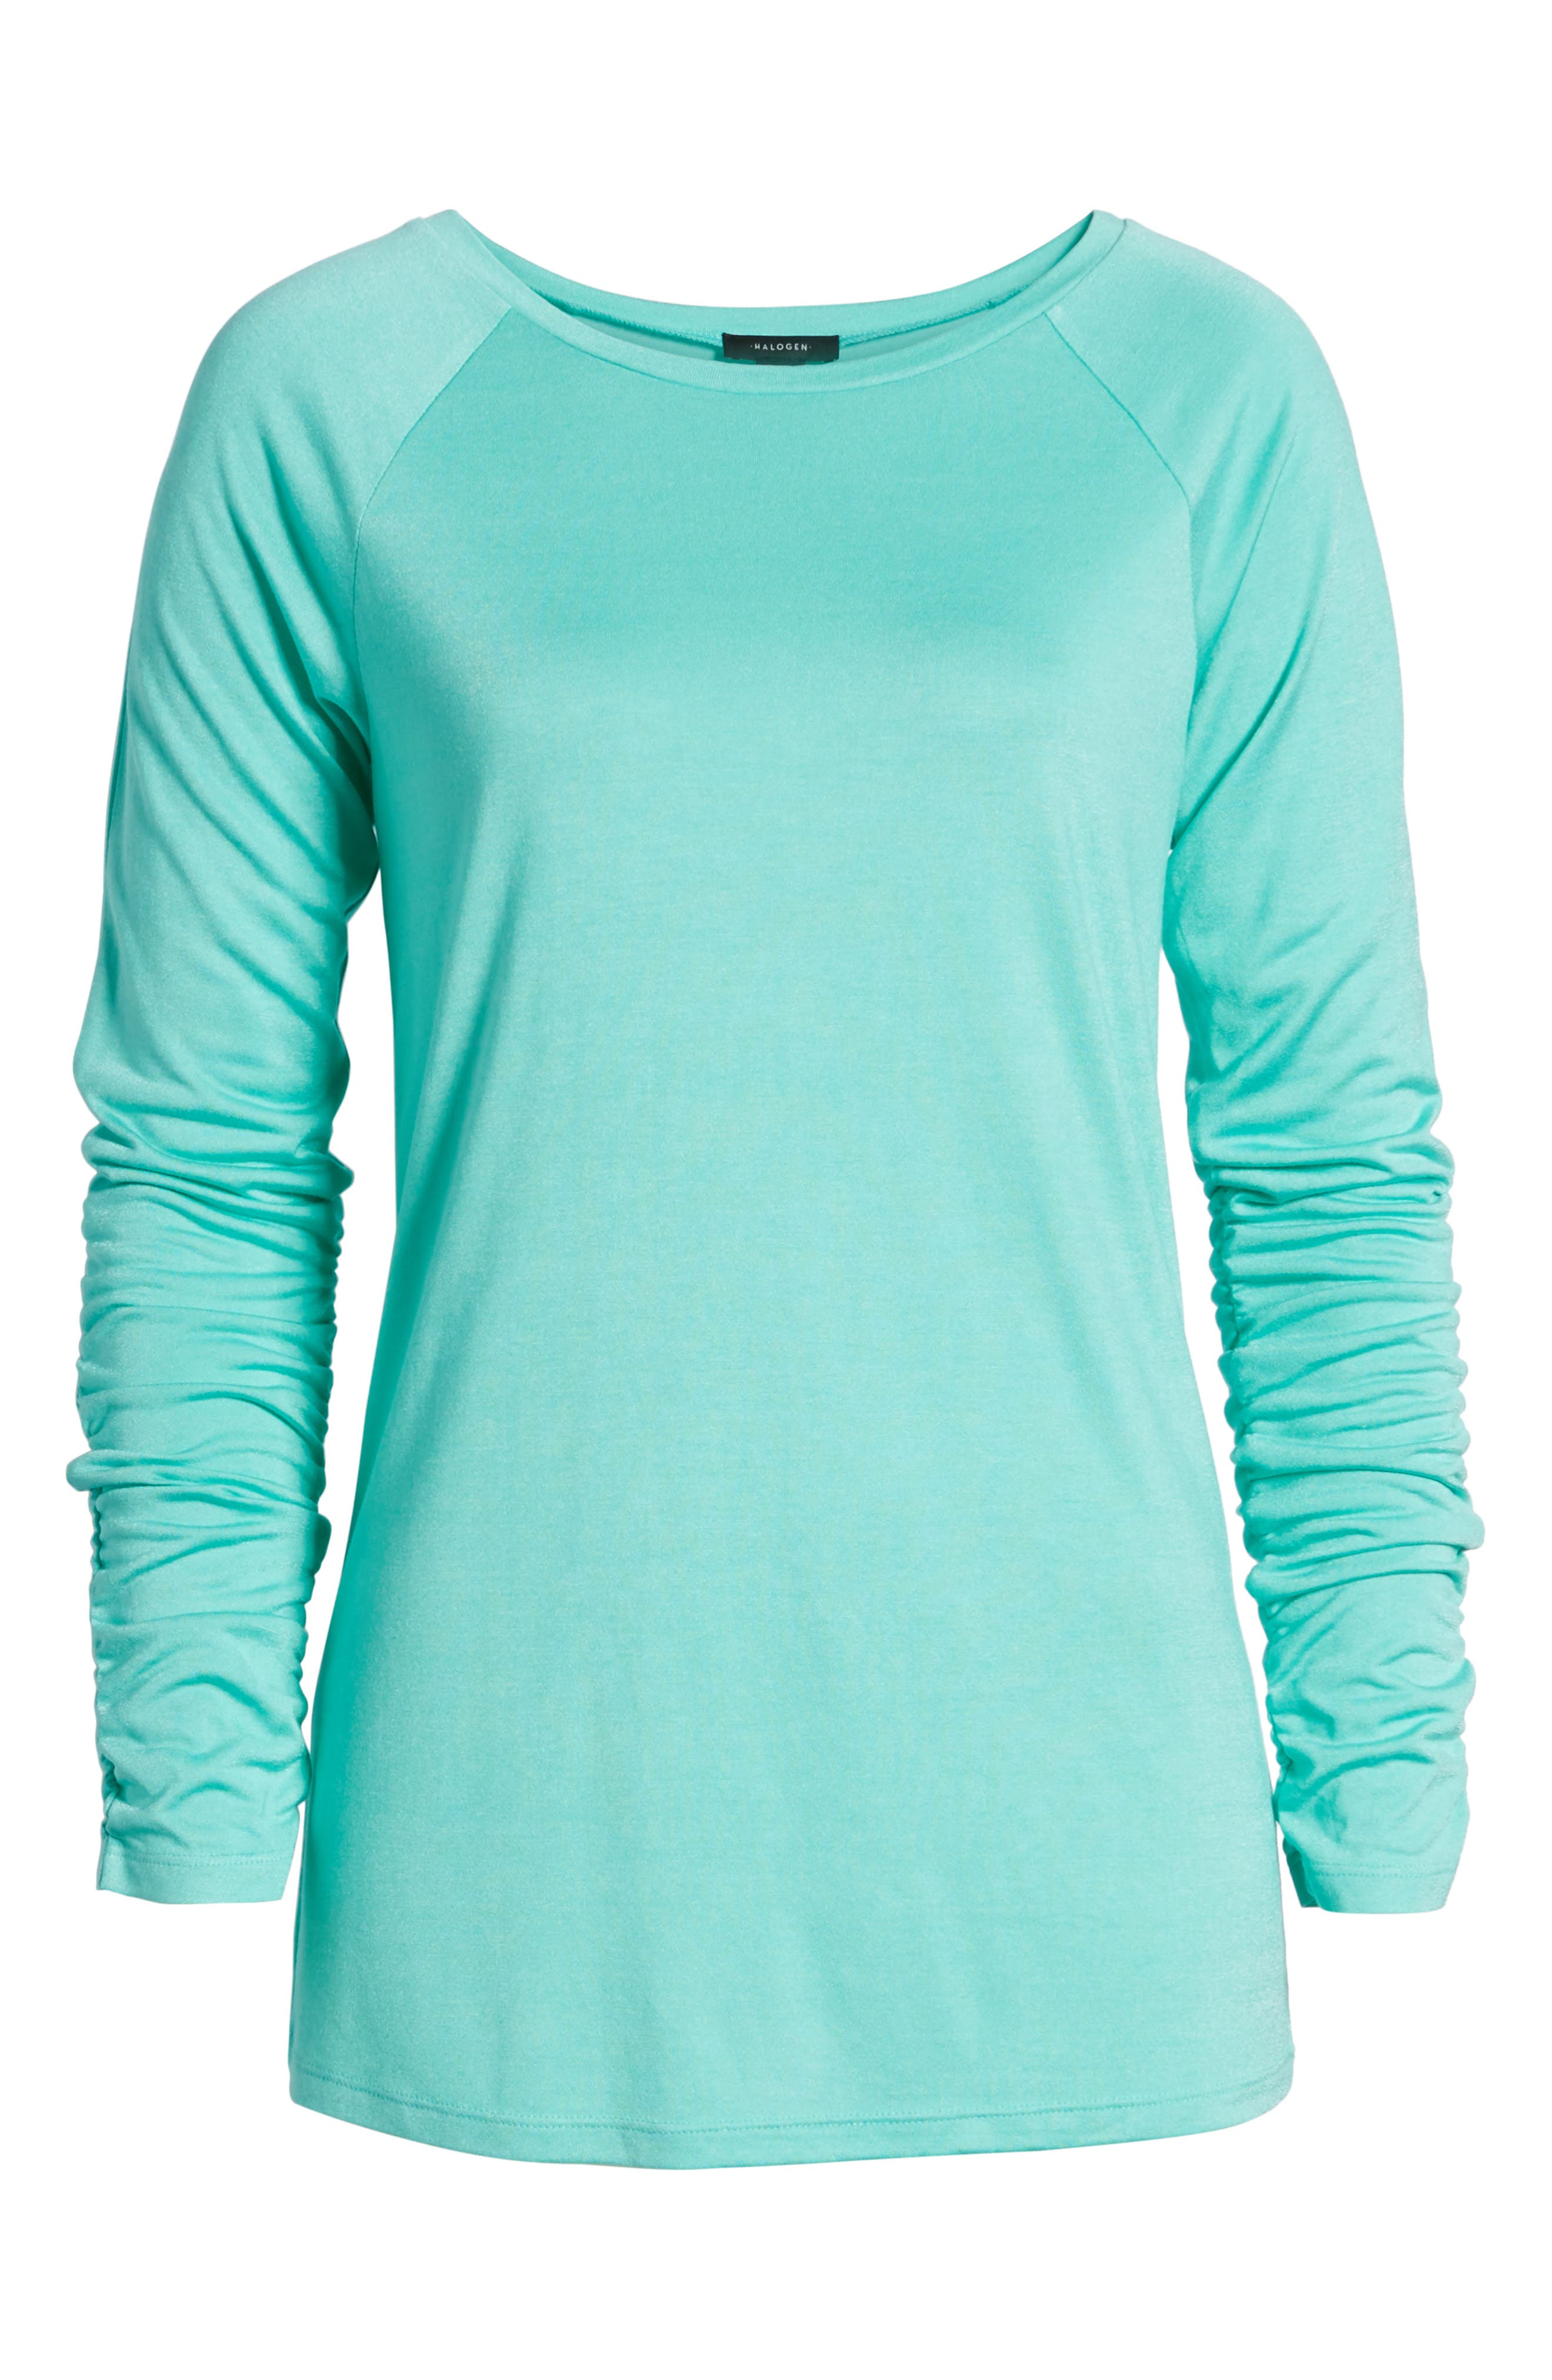 Ruched Sleeve Tee,                             Alternate thumbnail 6, color,                             Green Largo